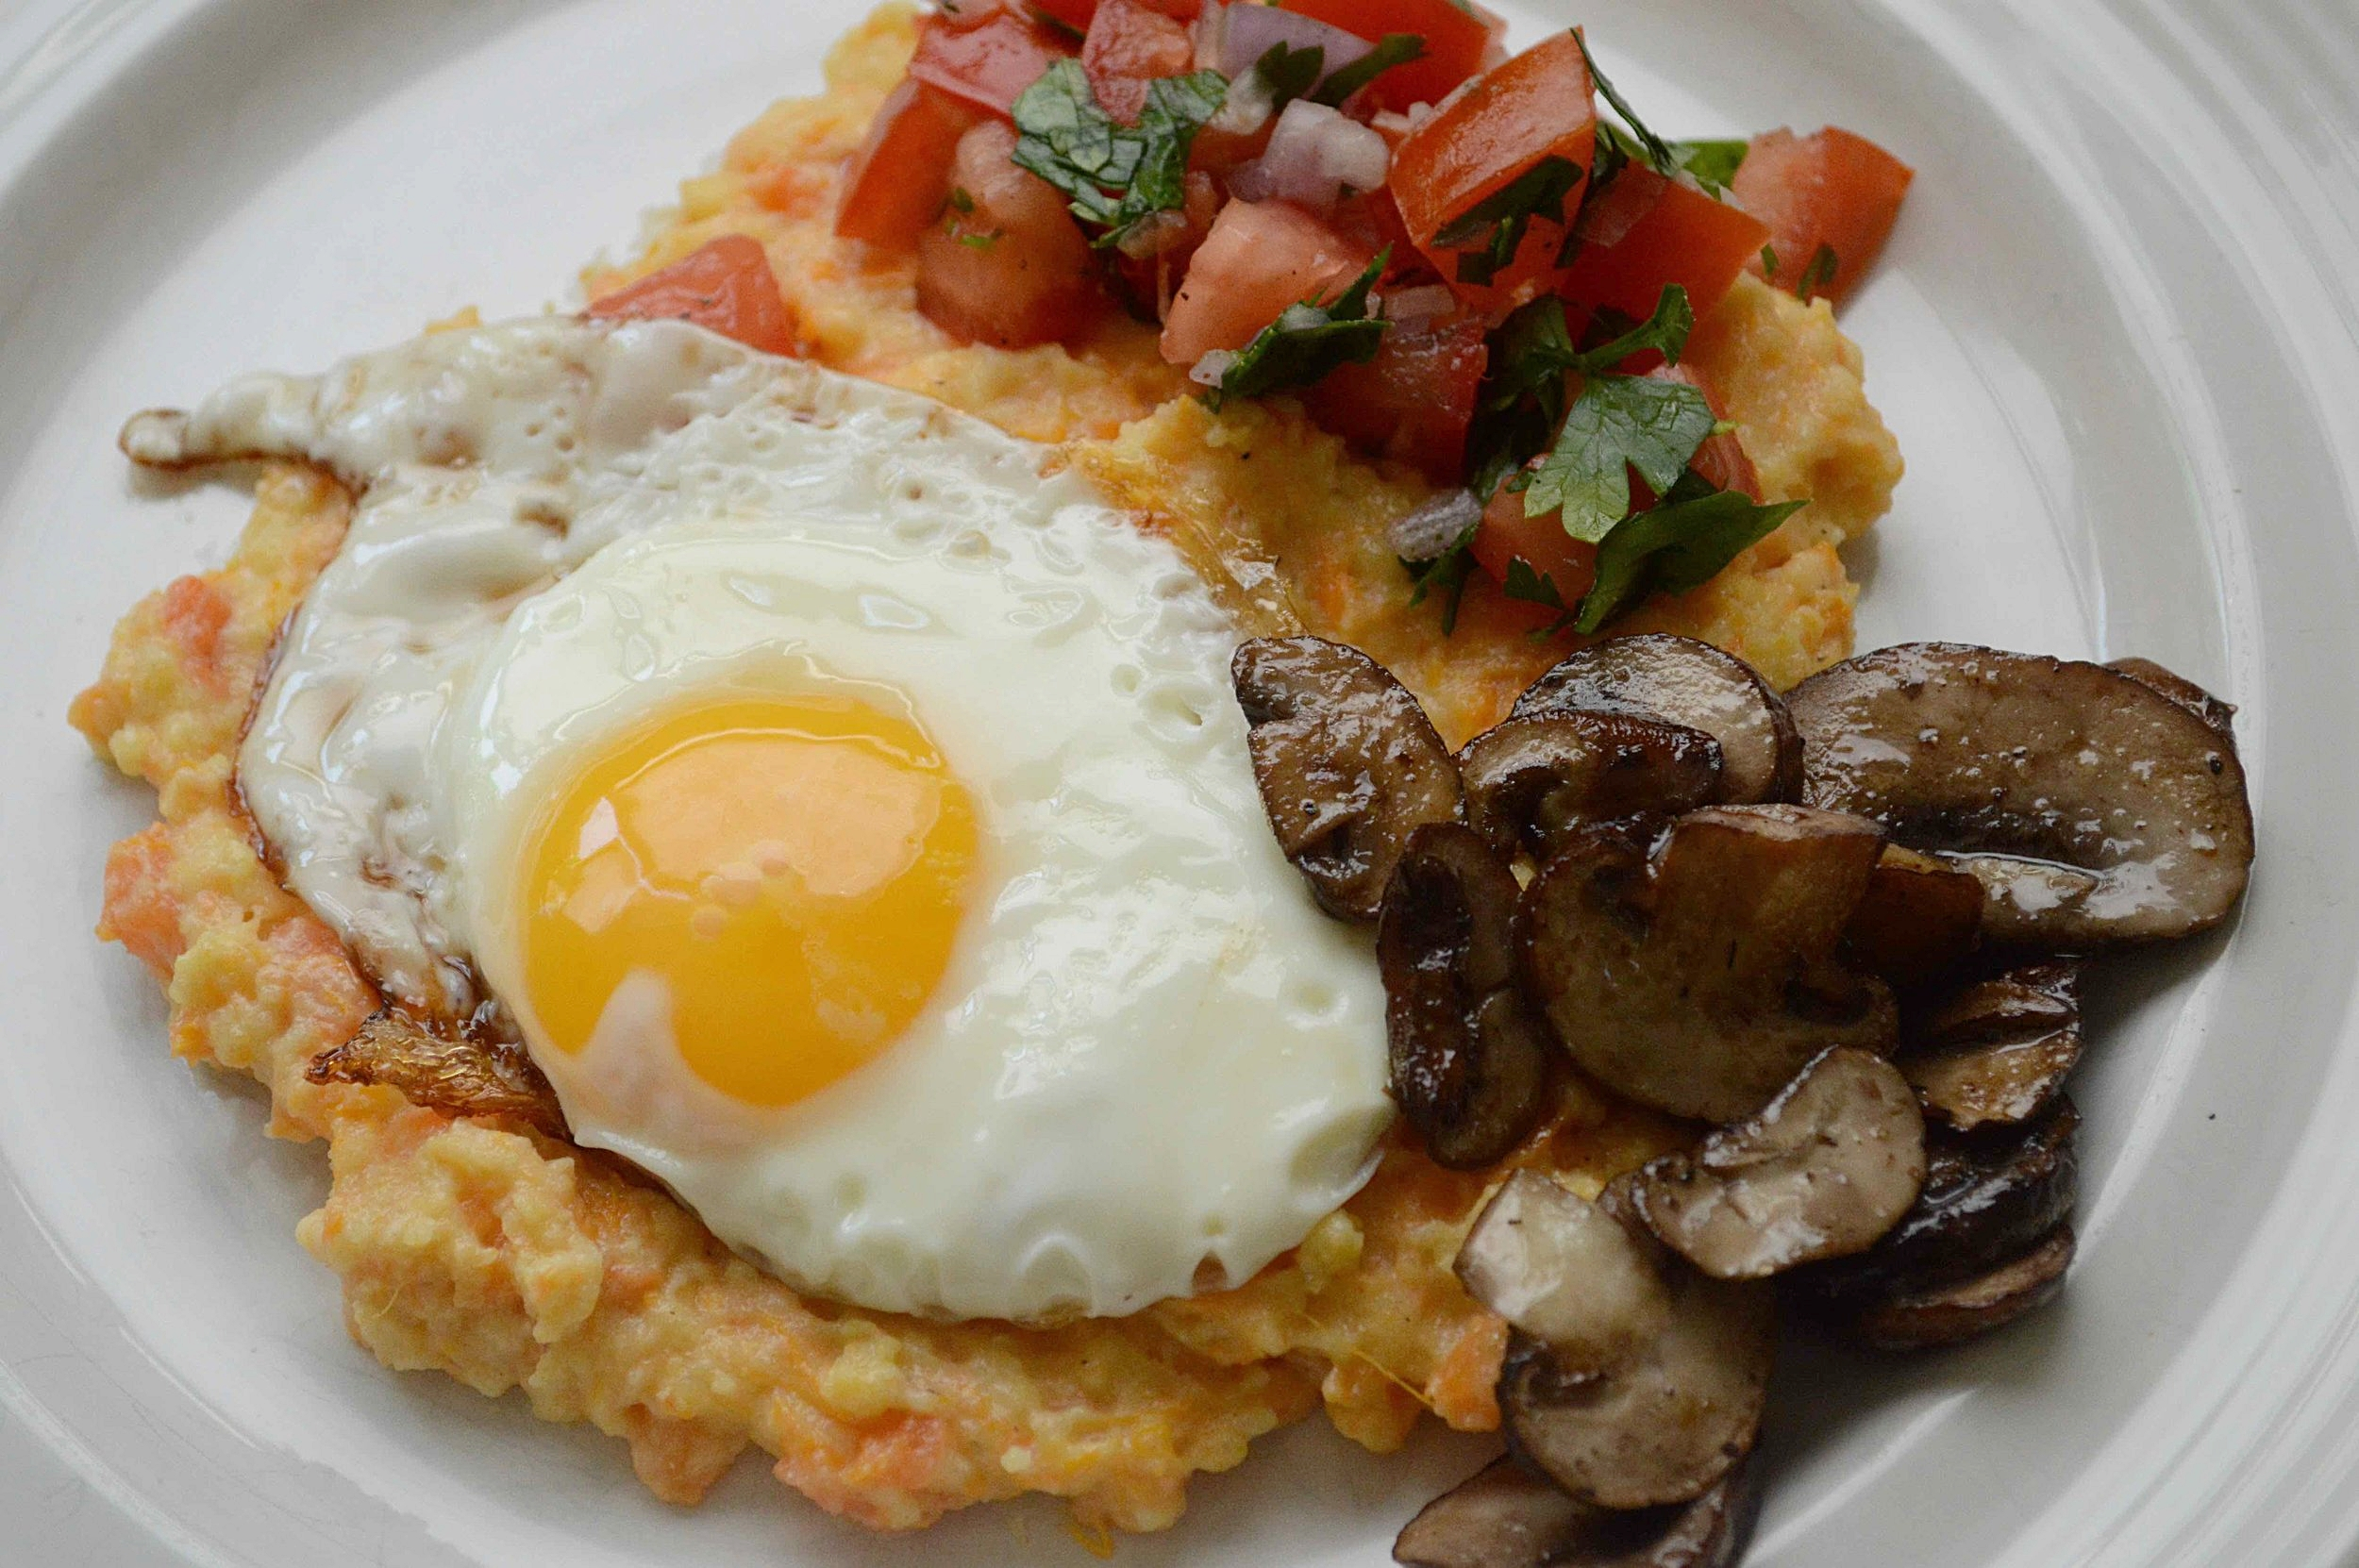 The Southern Vegetarian's Sweet Potato Grits with Maple Mushrooms and Fried Egg